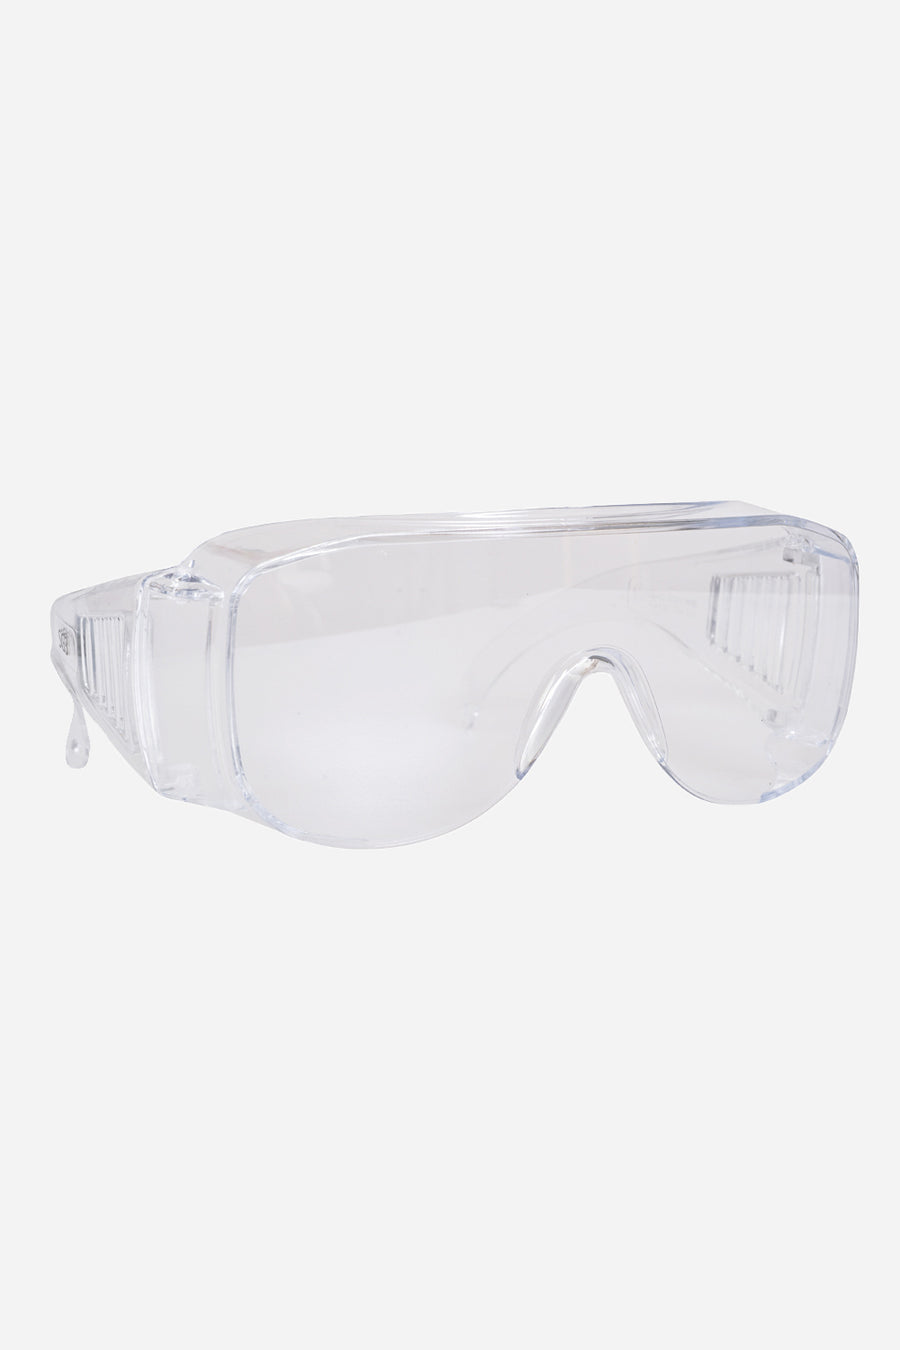 Over Wrap Safety Glasses 2021